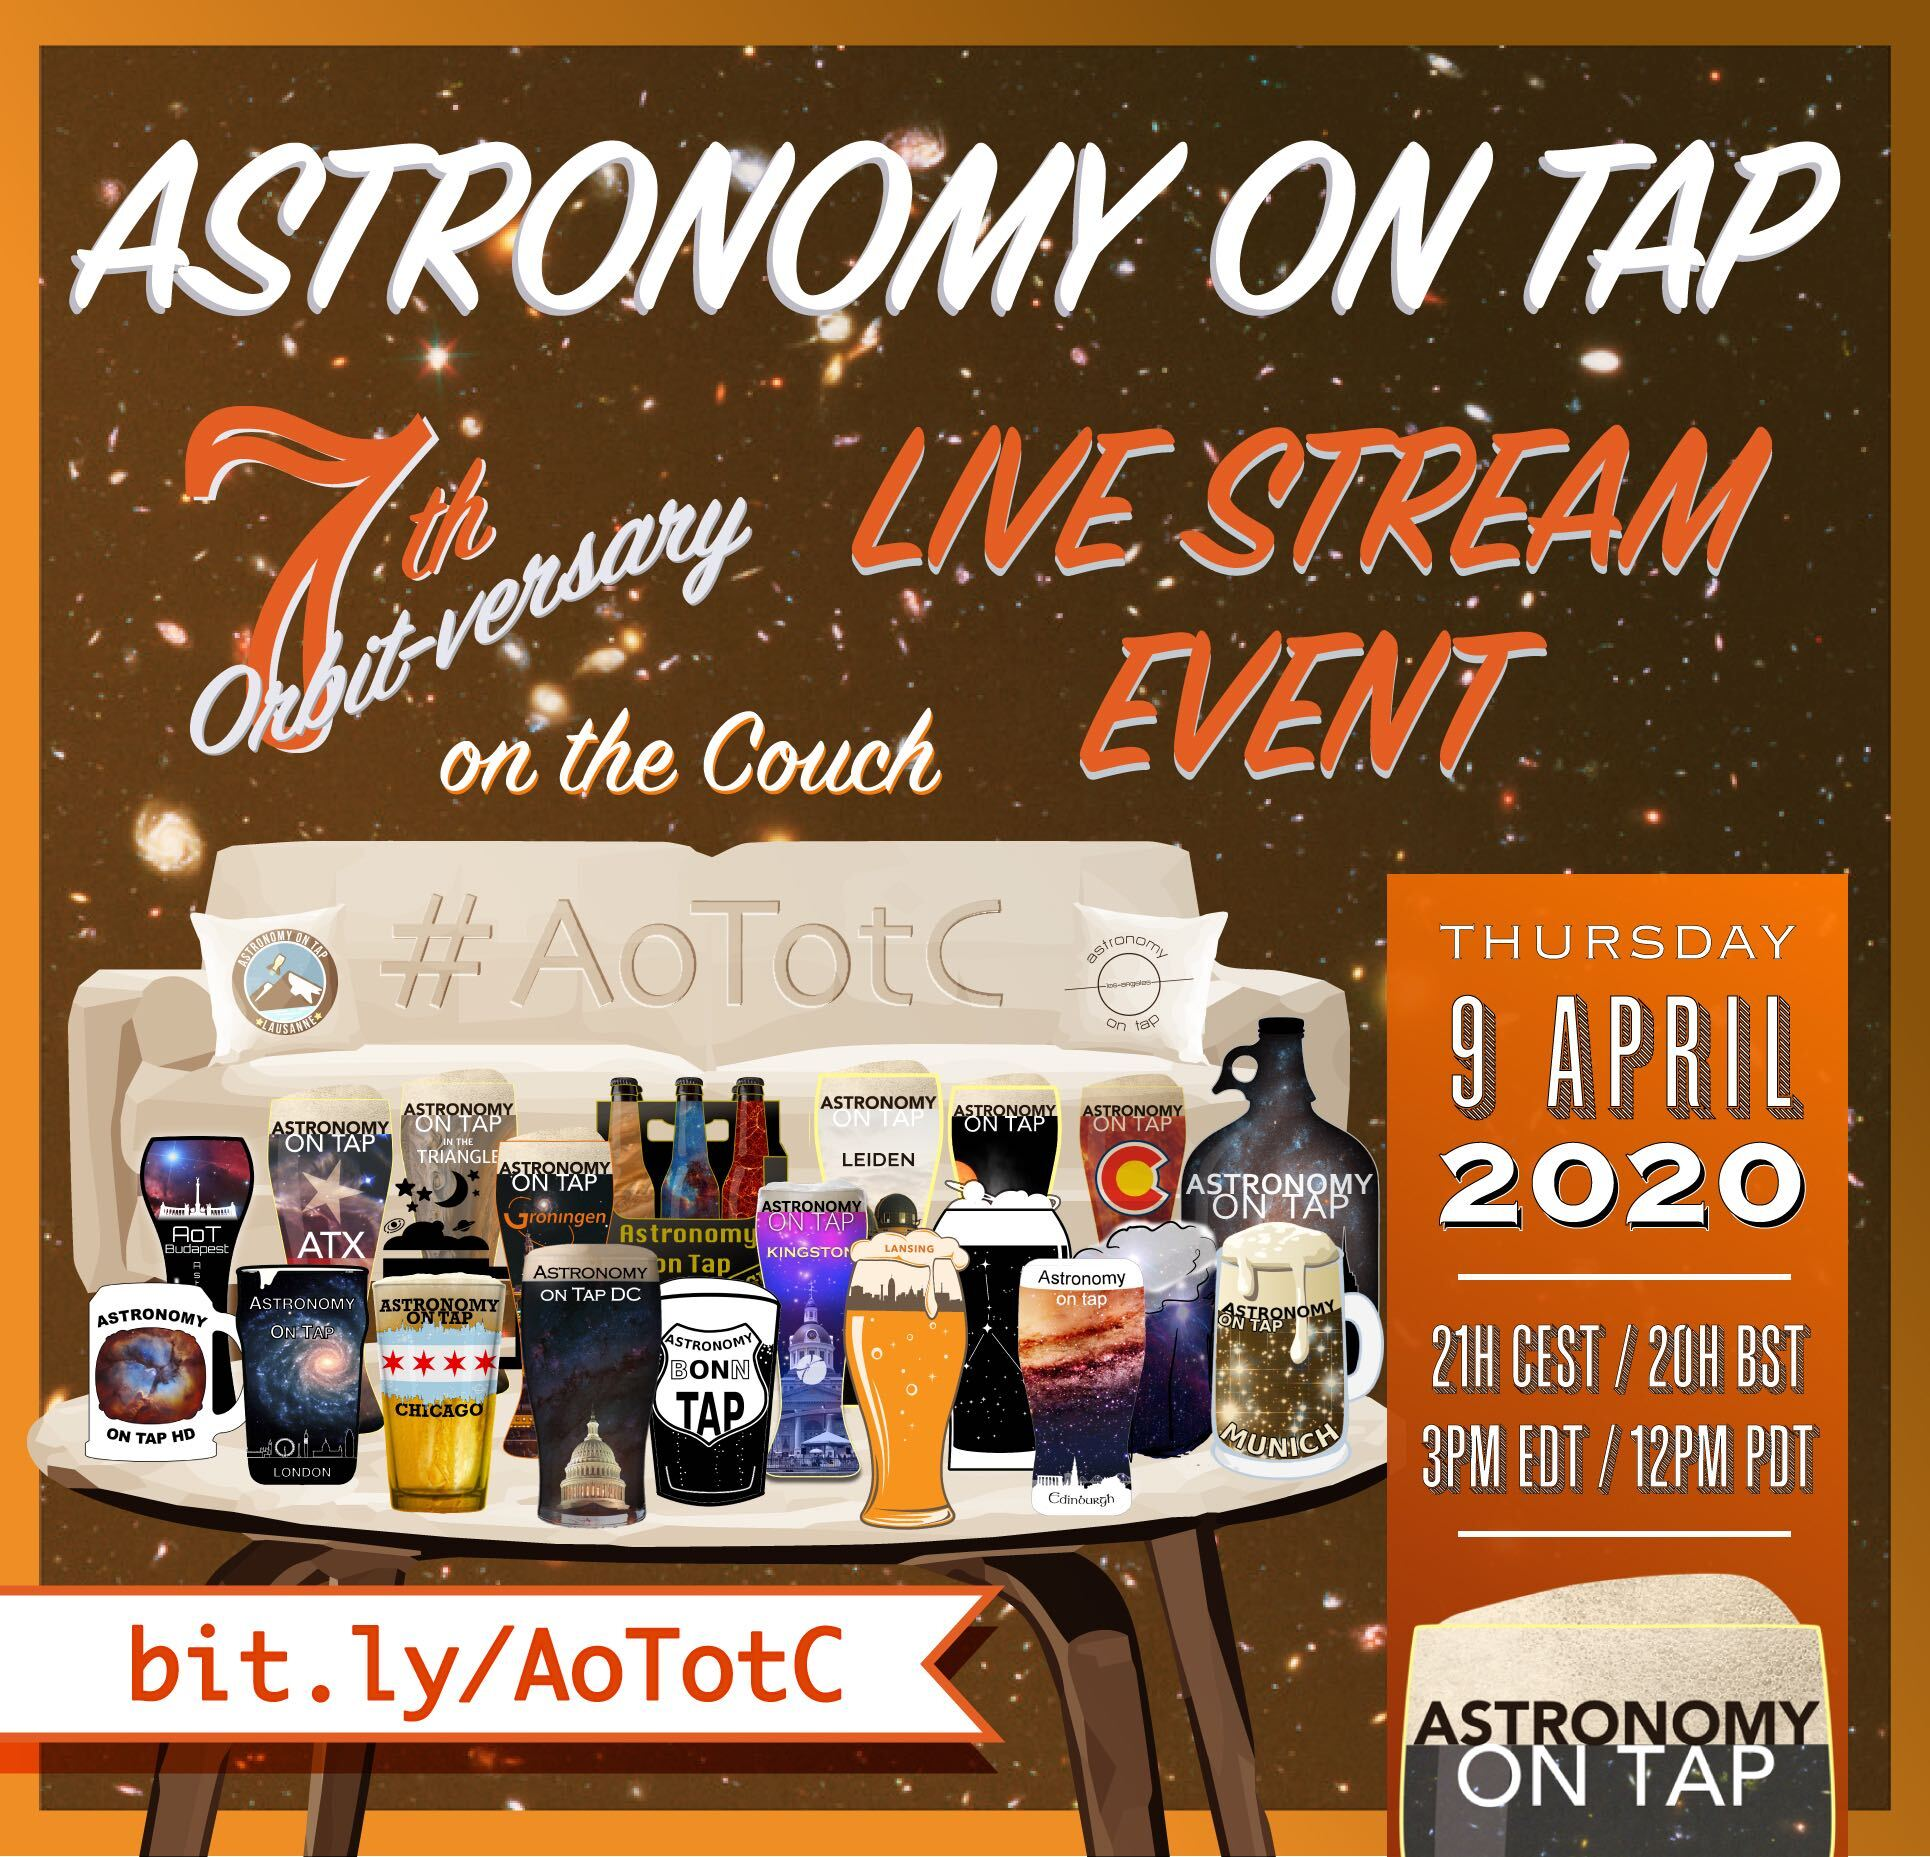 Astronomy on Tap on the Couch flyer